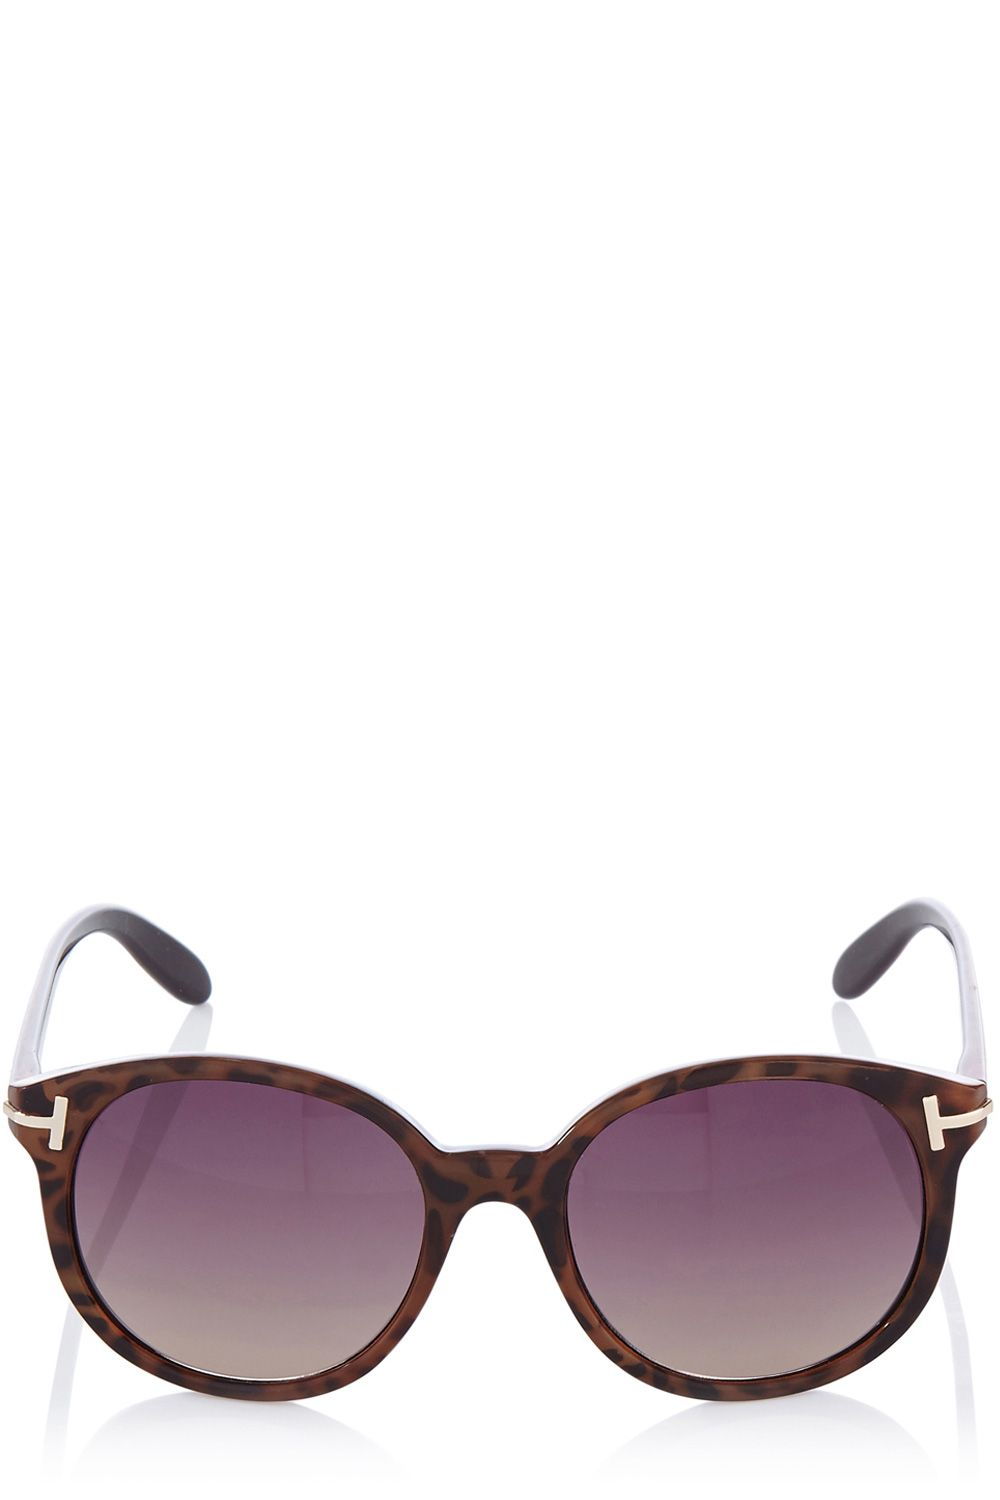 Oversized preppy sunglasses